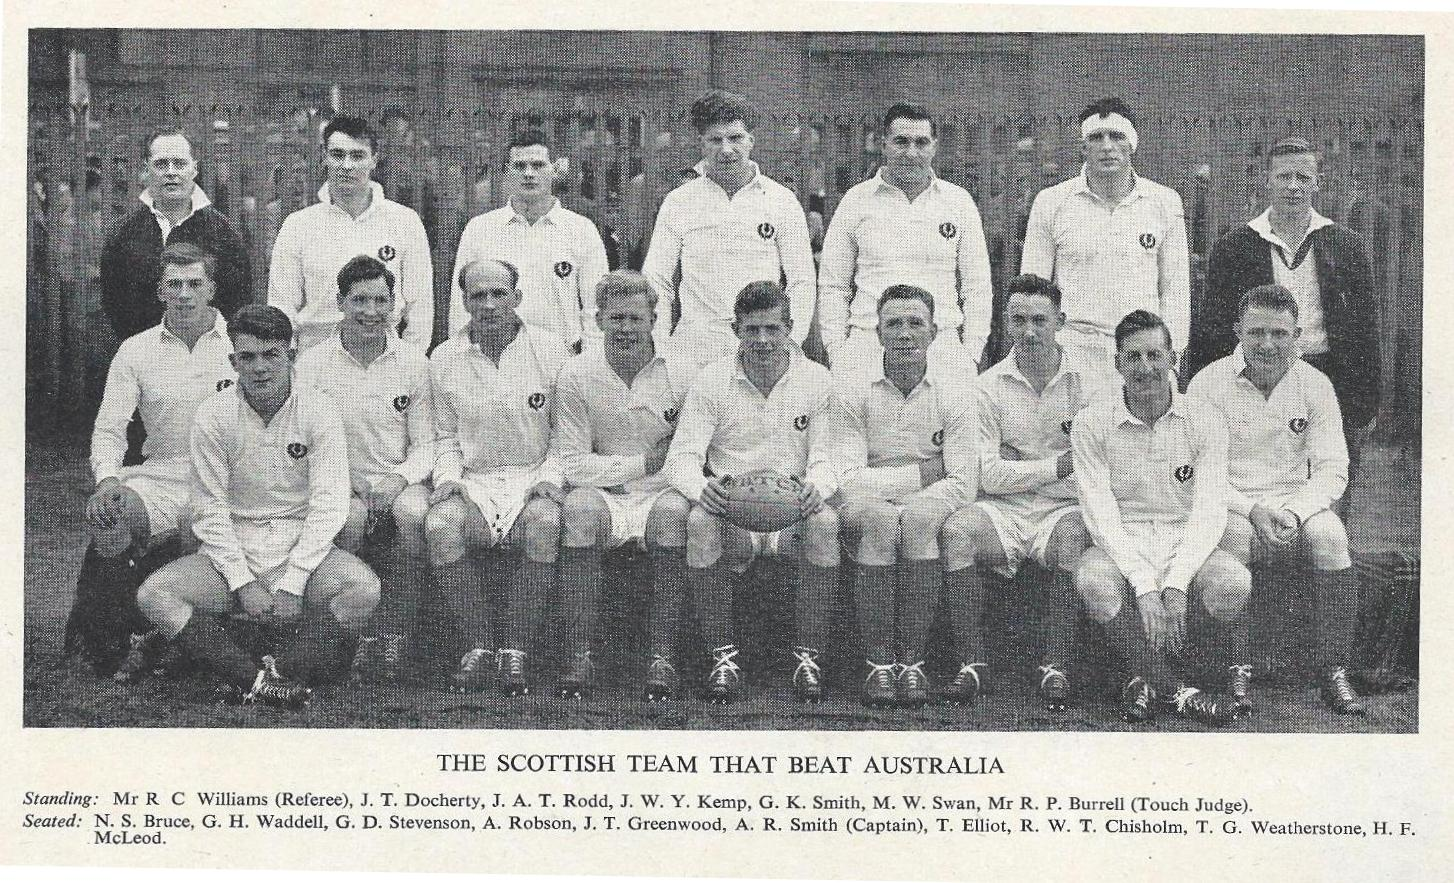 1958 Scotland v Australia Team Photo - Rugby Memorabilia Society.jpg